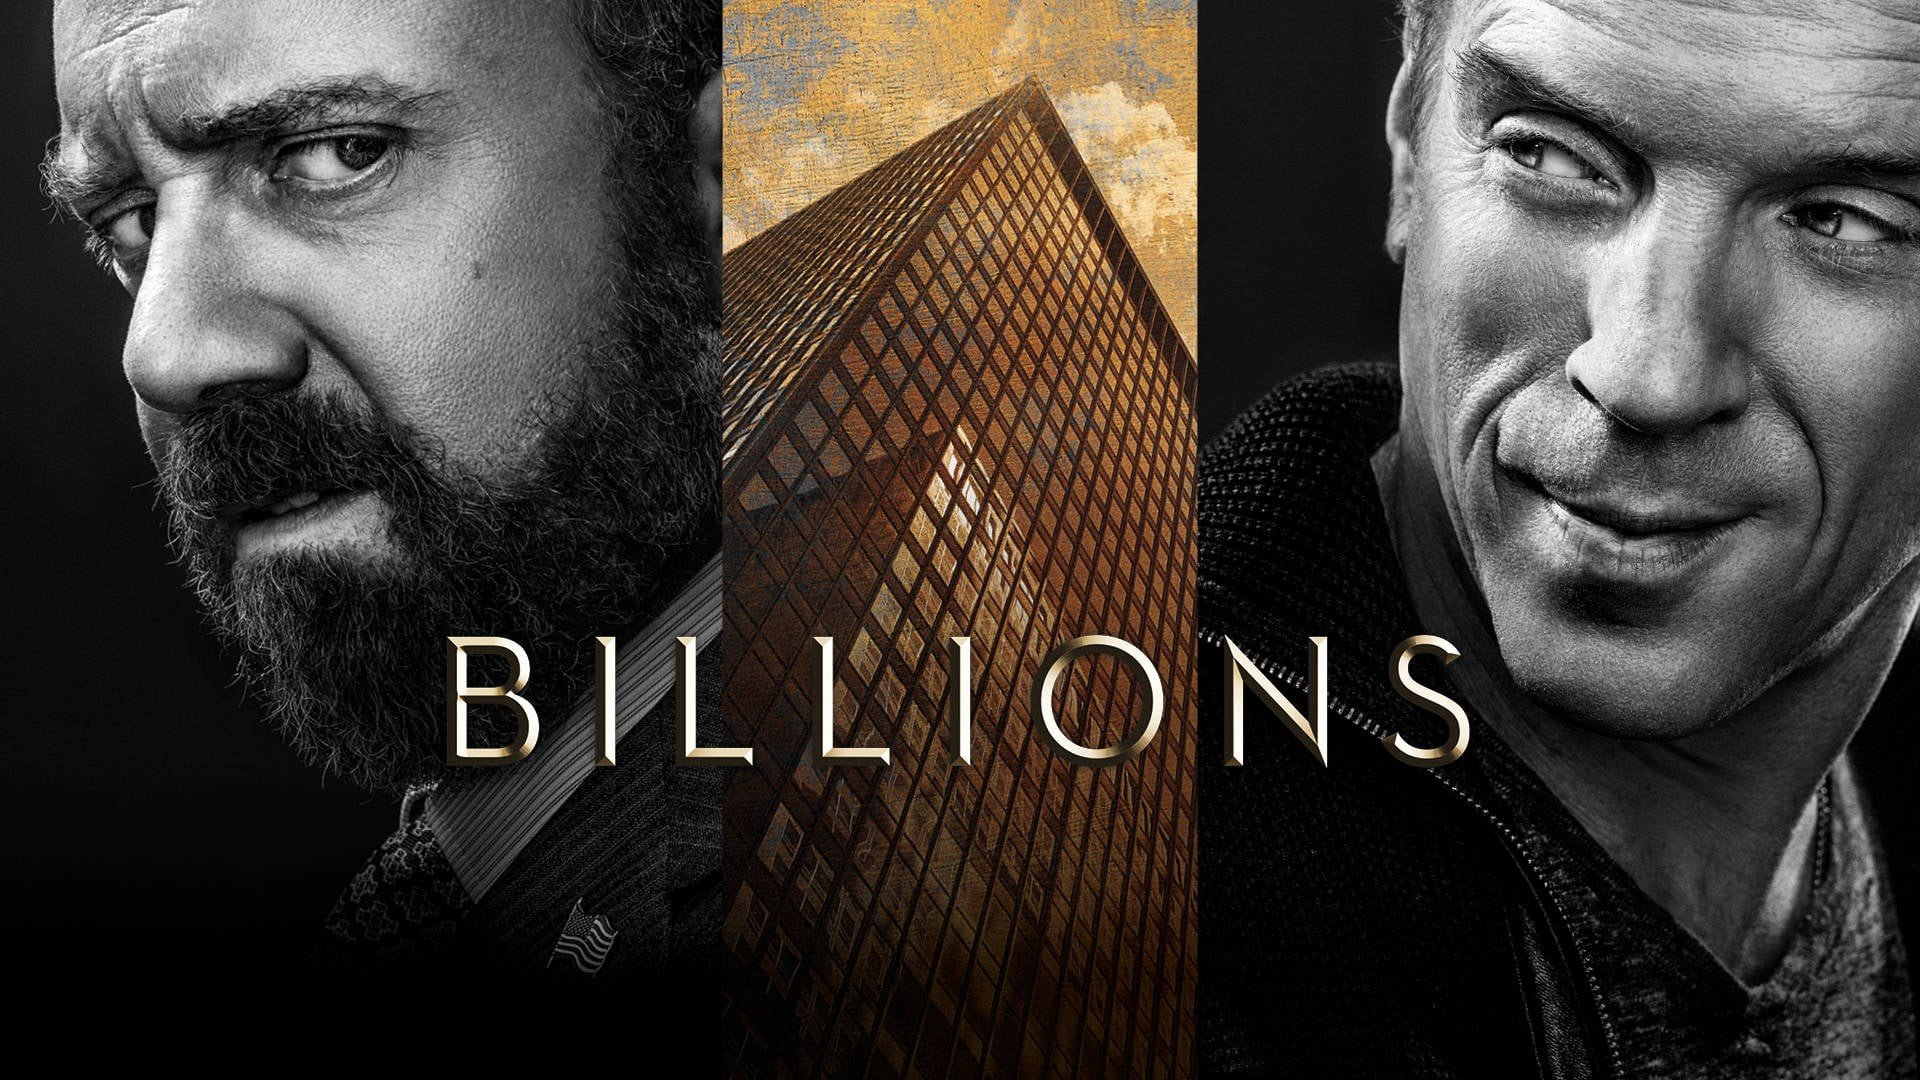 Billions season 5 episode 6 - The Nordic Model promo out, release date and all you need to know